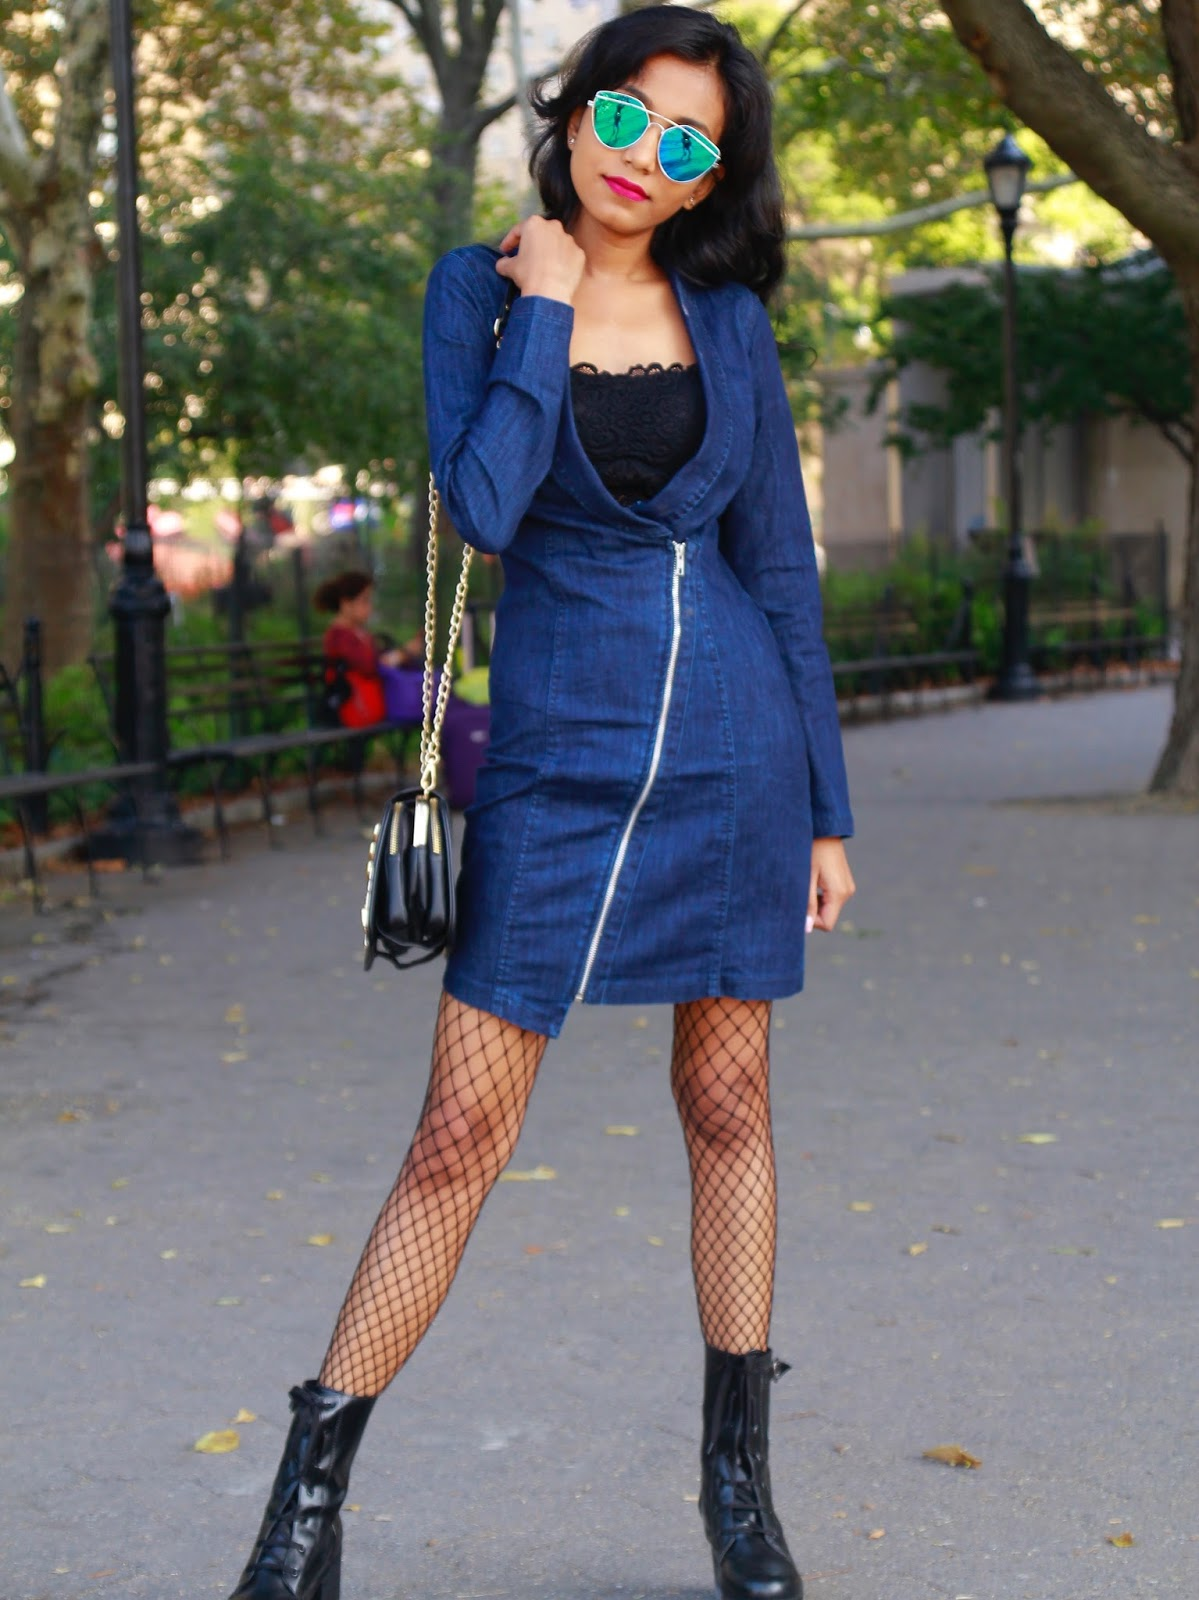 Denim Dress And Fishnet Fall Fashion New York